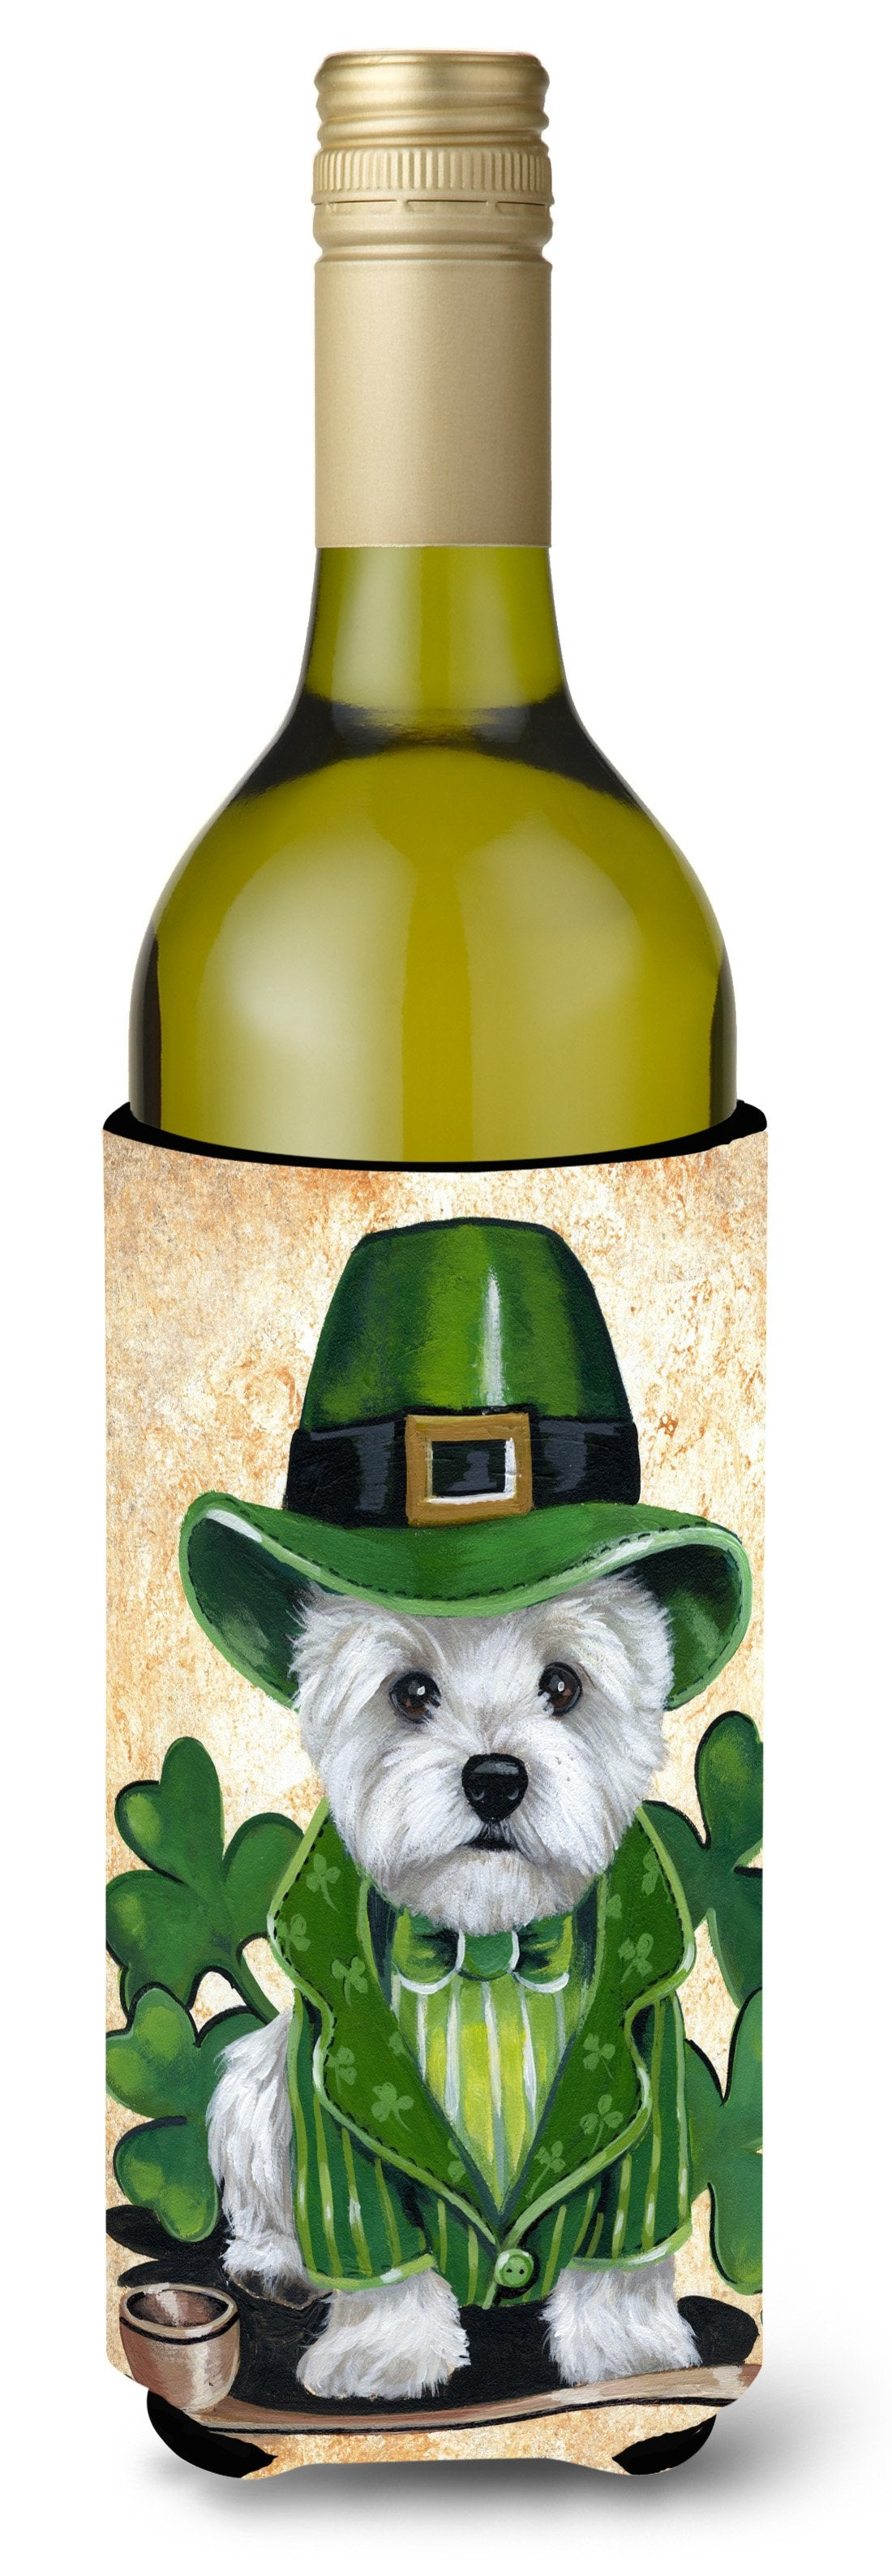 Westie St Patrick's Day Leprechaun Wine Bottle Hugger PPP3214LITERK by Caroline's Treasures